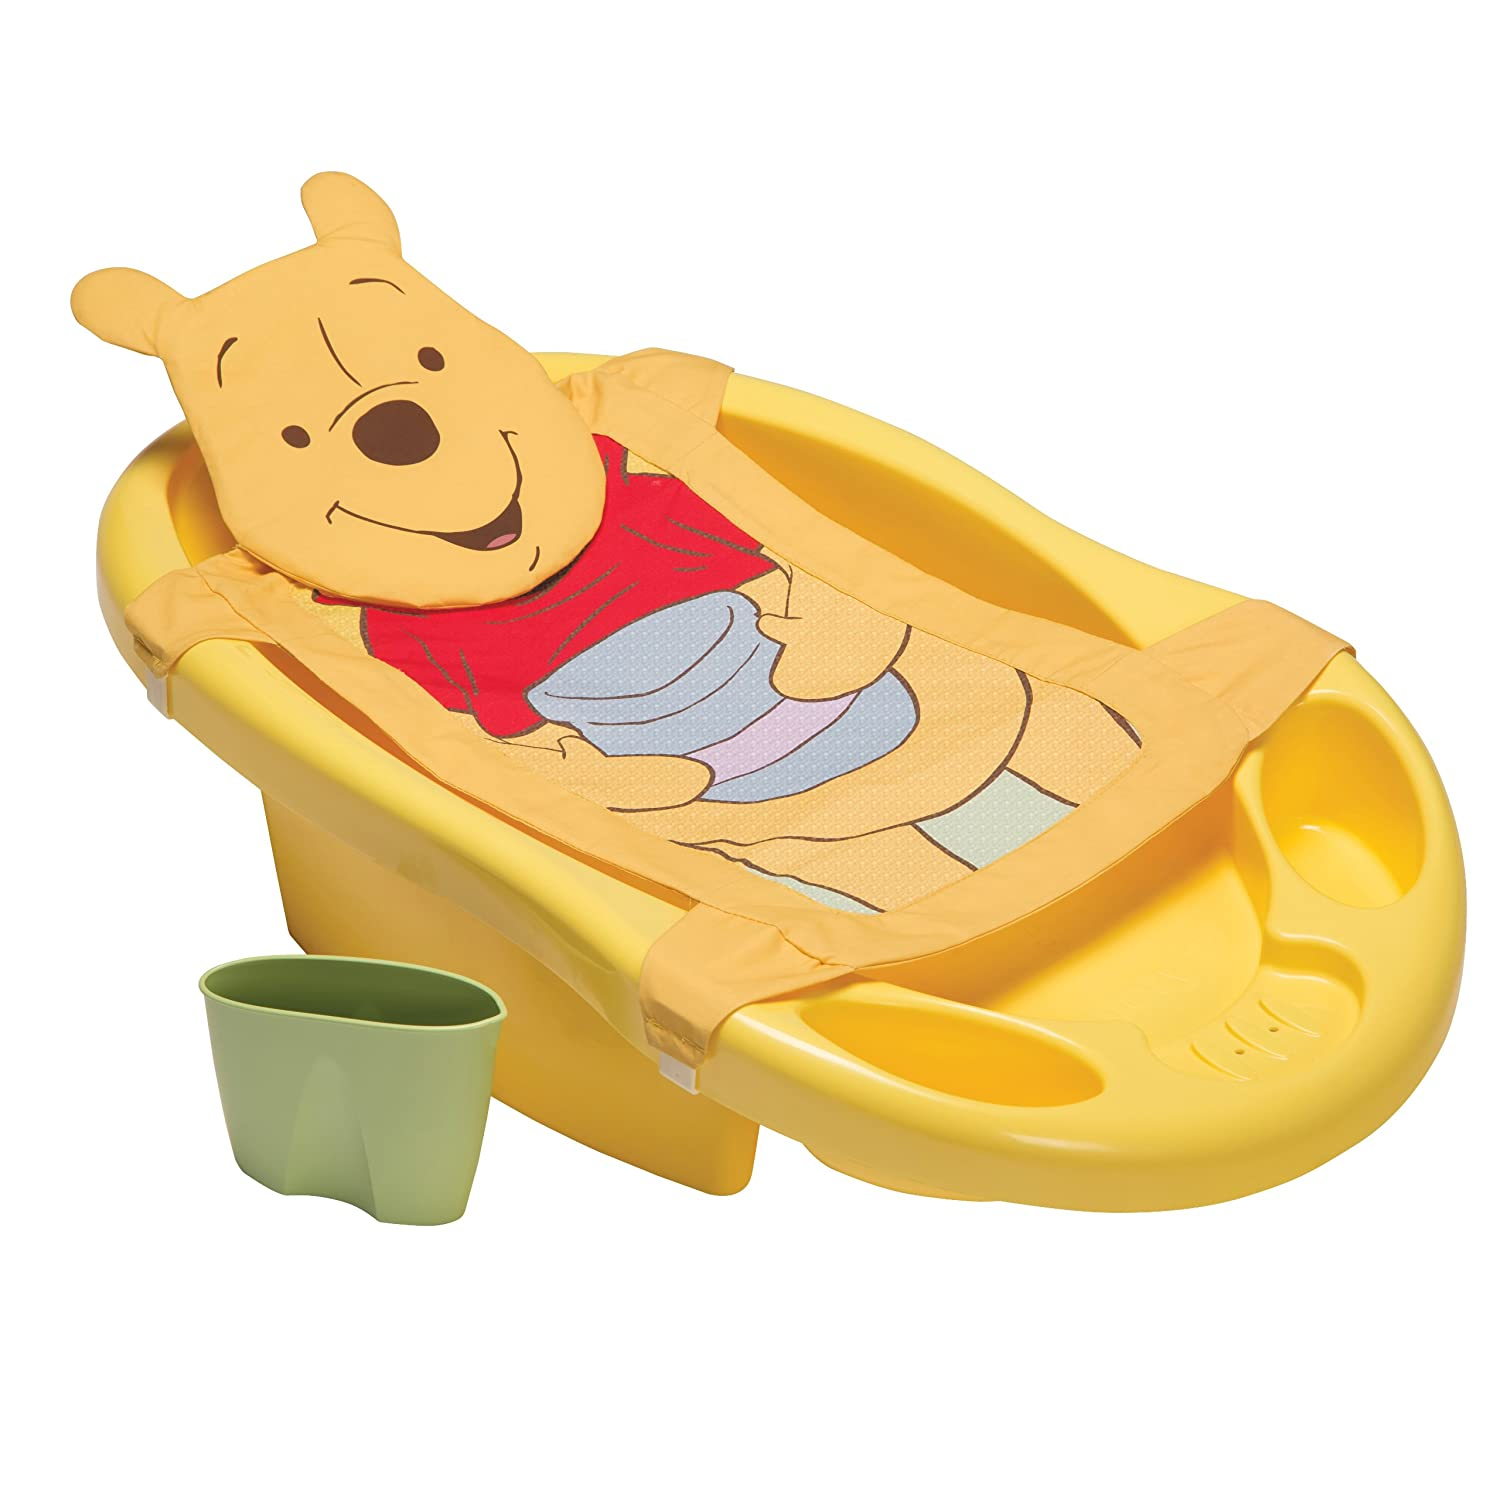 Buy Disney Baby Bath Tub Pooh Online at Low Prices in India - Amazon.in